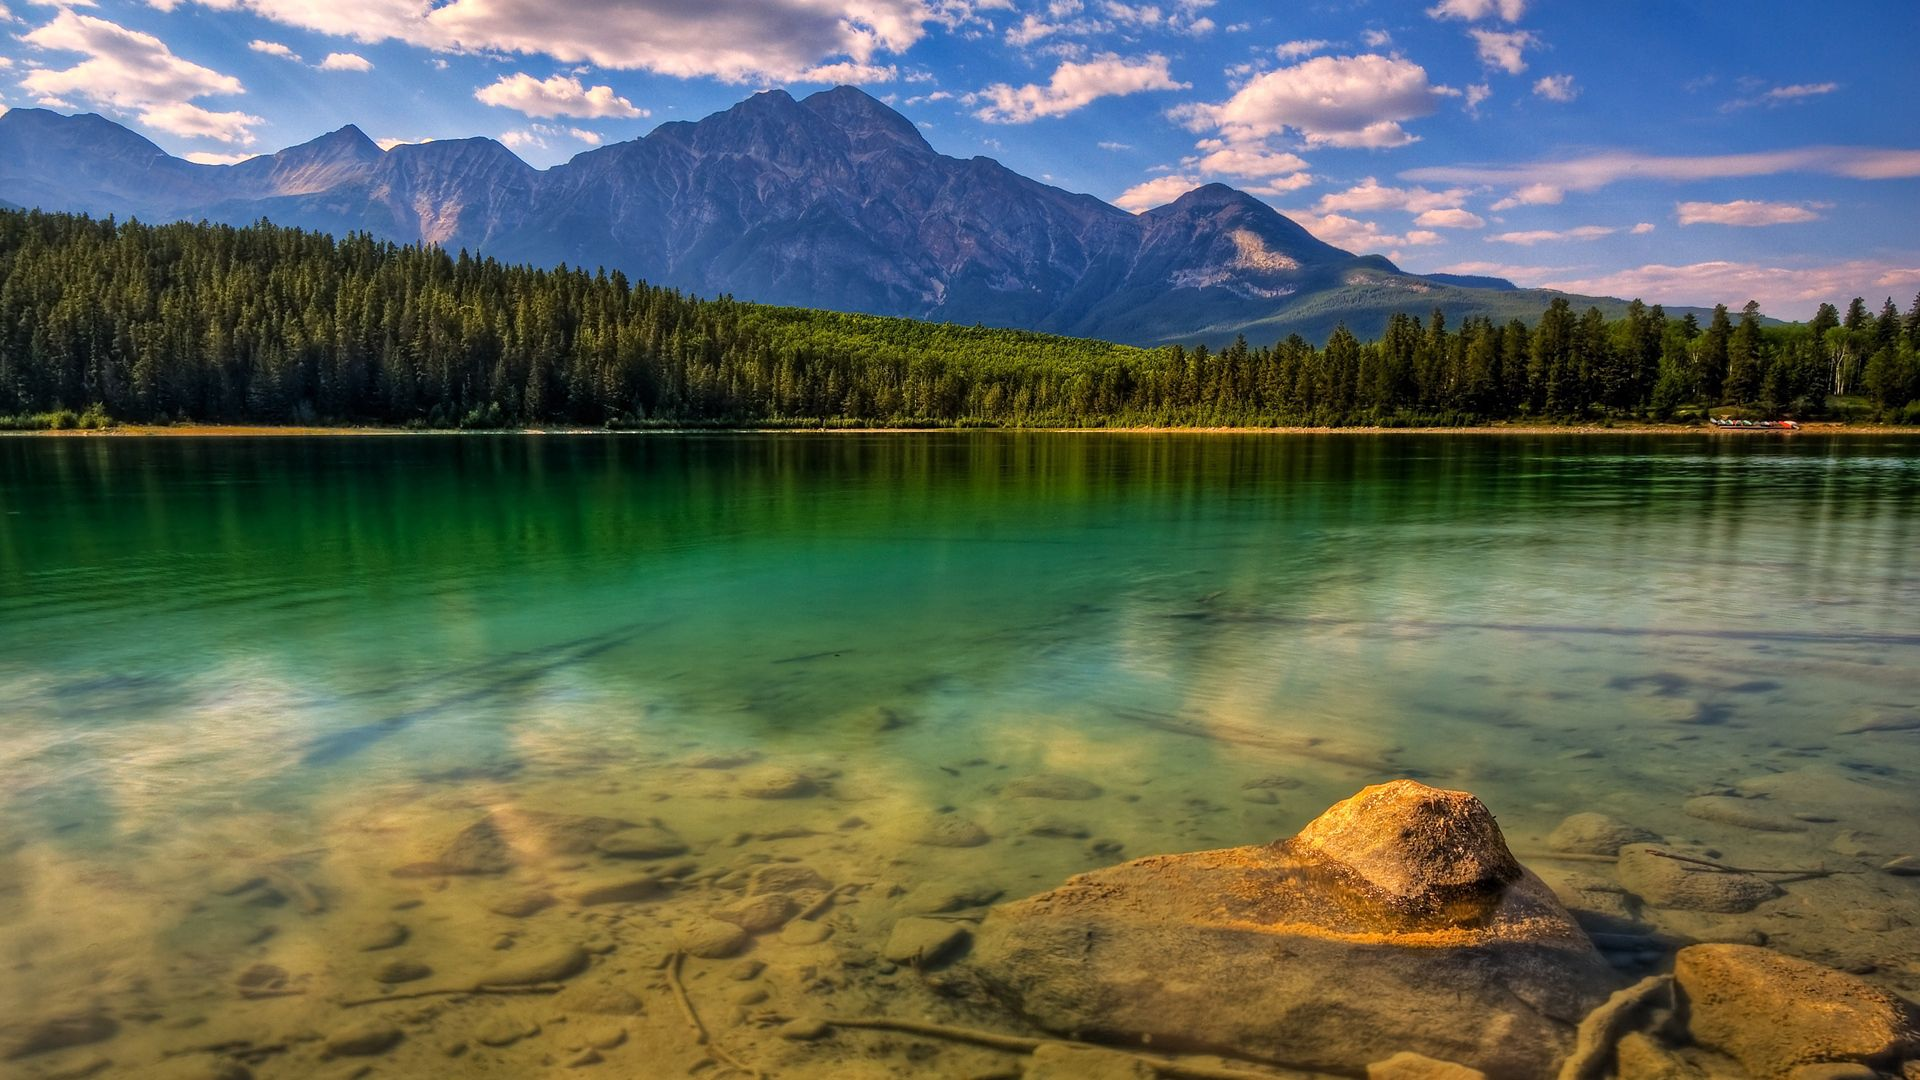 149363 download wallpaper Nature, Water, Trees, Stones, Mountains, Lake, Shore, Bank, Transparent, Forest, Bottom screensavers and pictures for free